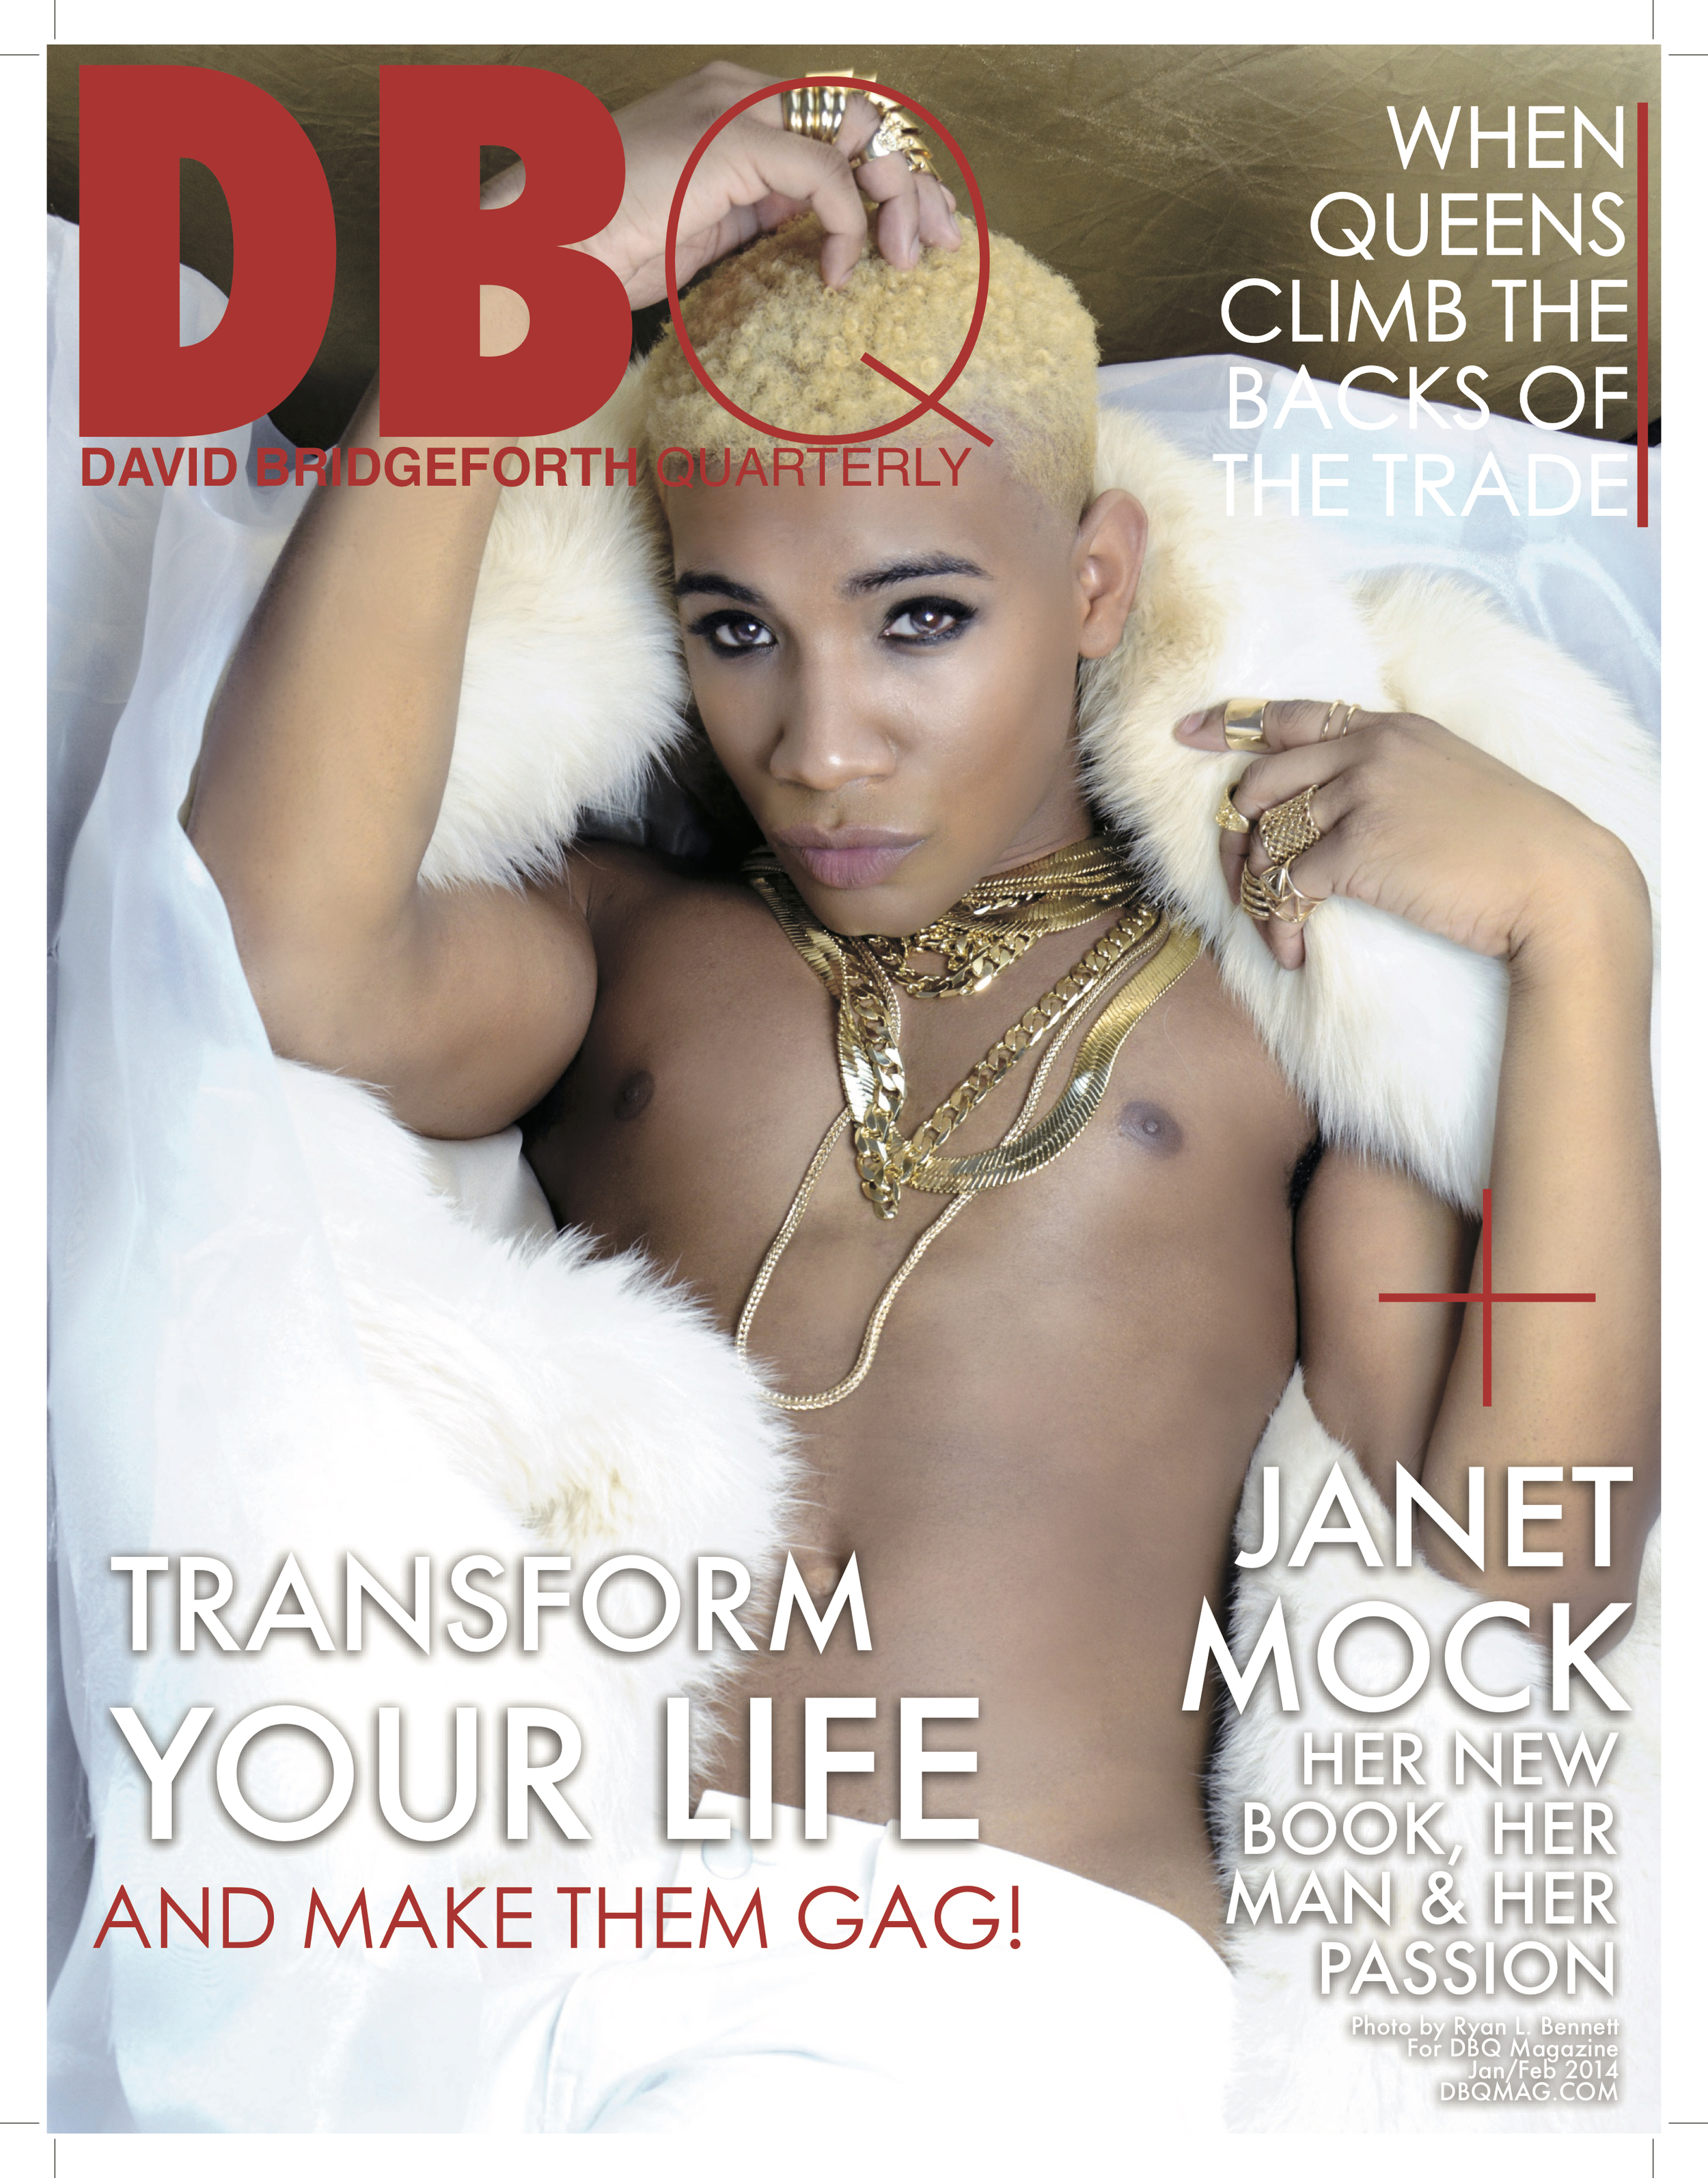 JAN-FEB 2014 Proof 100902 DBQ Magazine.jpg